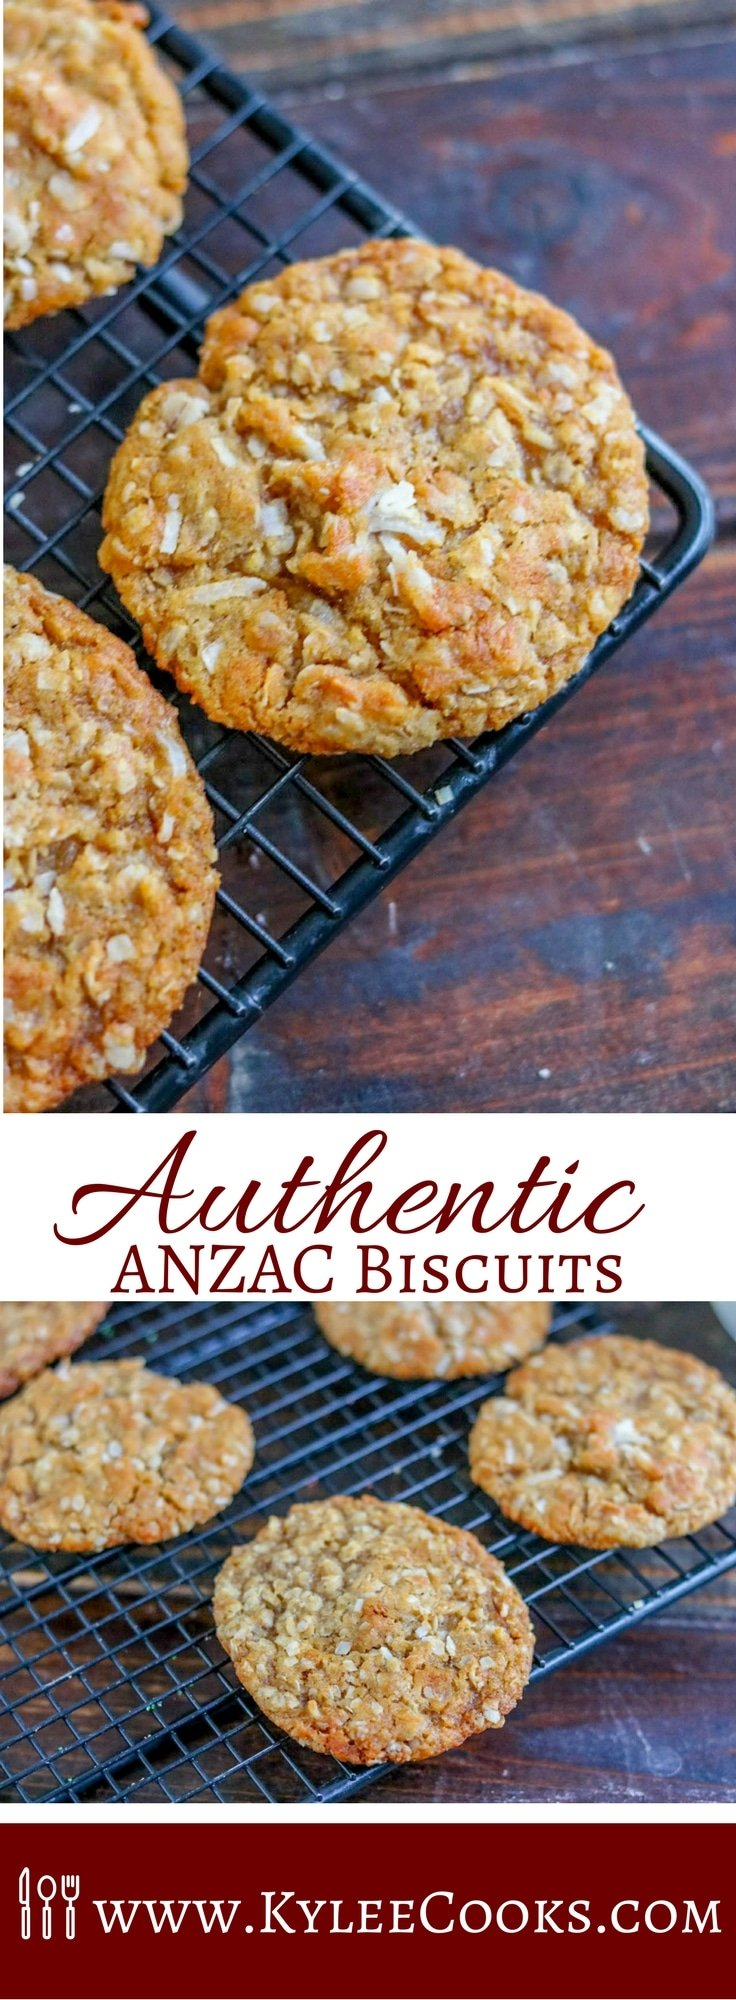 These Authentic ANZAC Biscuits are fabulous! Buttery, chewy, oatmeal coconut biscuits that have a rich history. A delicious treat still popular today!